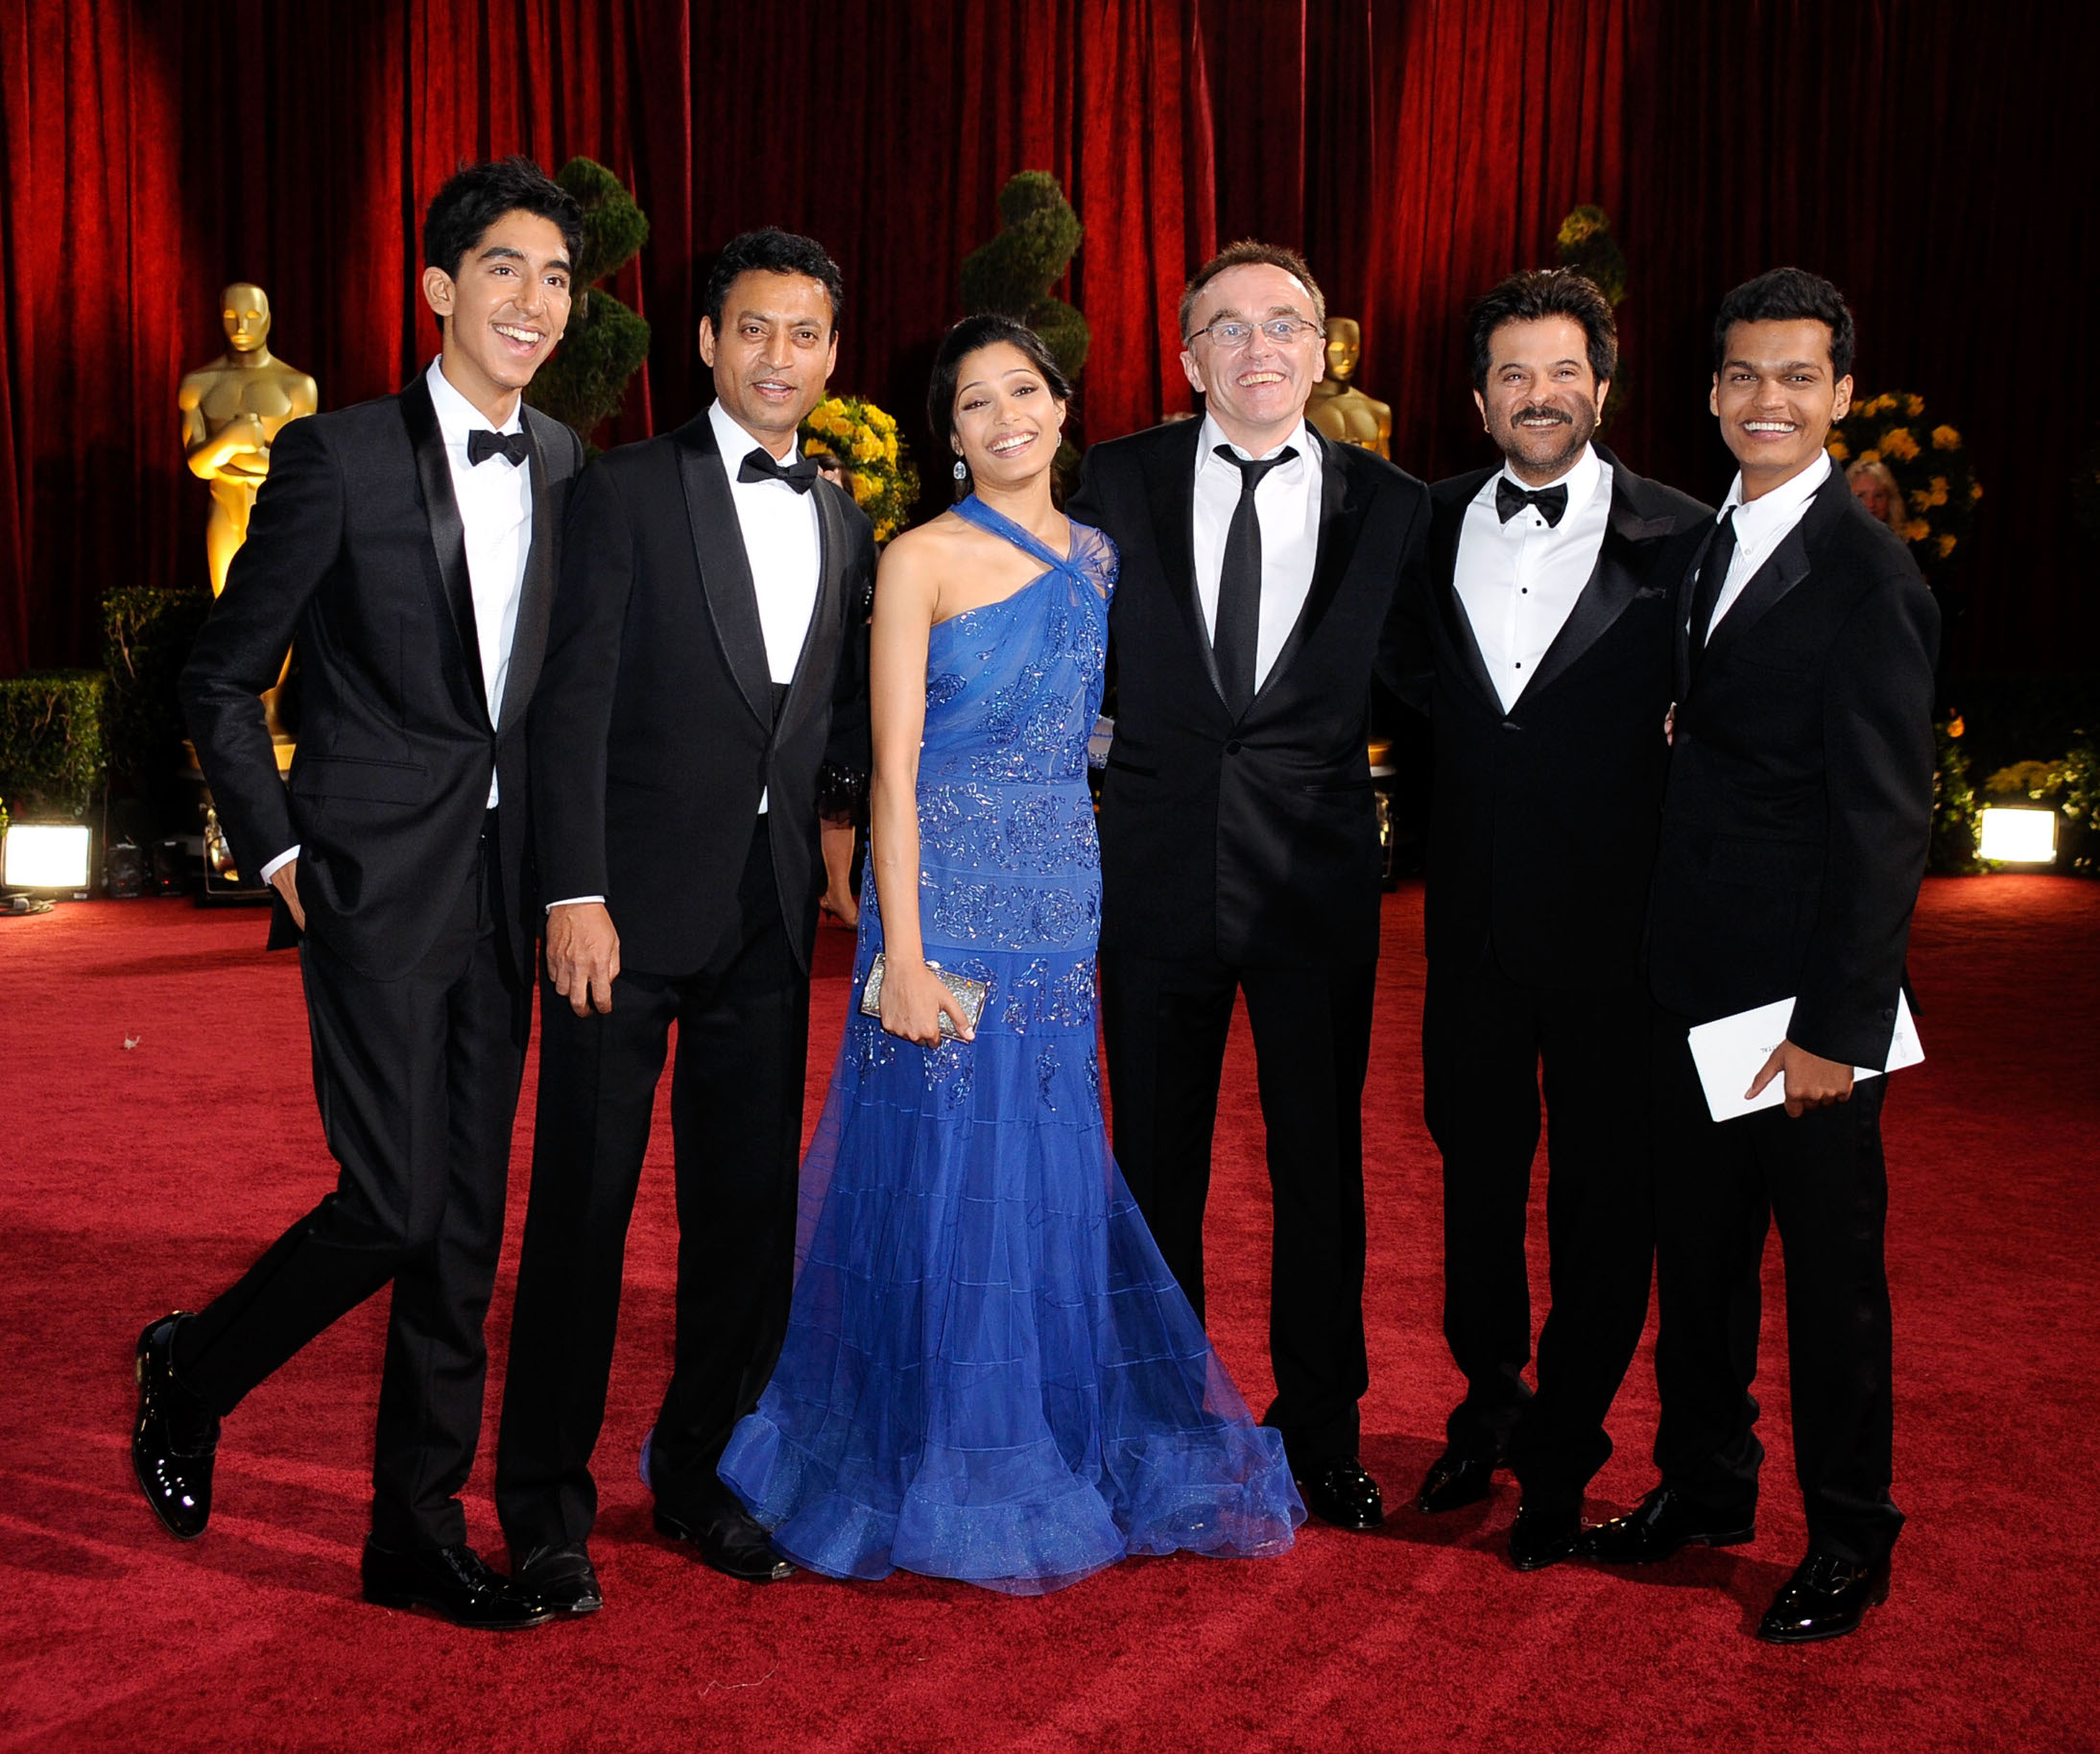 LOS ANGELES, CA - FEBRUARY 22:  (L-R) Actors Dev Patel, Irrfan Khan and Freida Pinto, director Danny Boyle actors Anil Kapoor and Madhur Mittal arrive at the 81st Annual Academy Awards held at Kodak Theatre on February 22, 2009 in Los Angeles, California.  (Photo by Frazer Harrison/Getty Images)